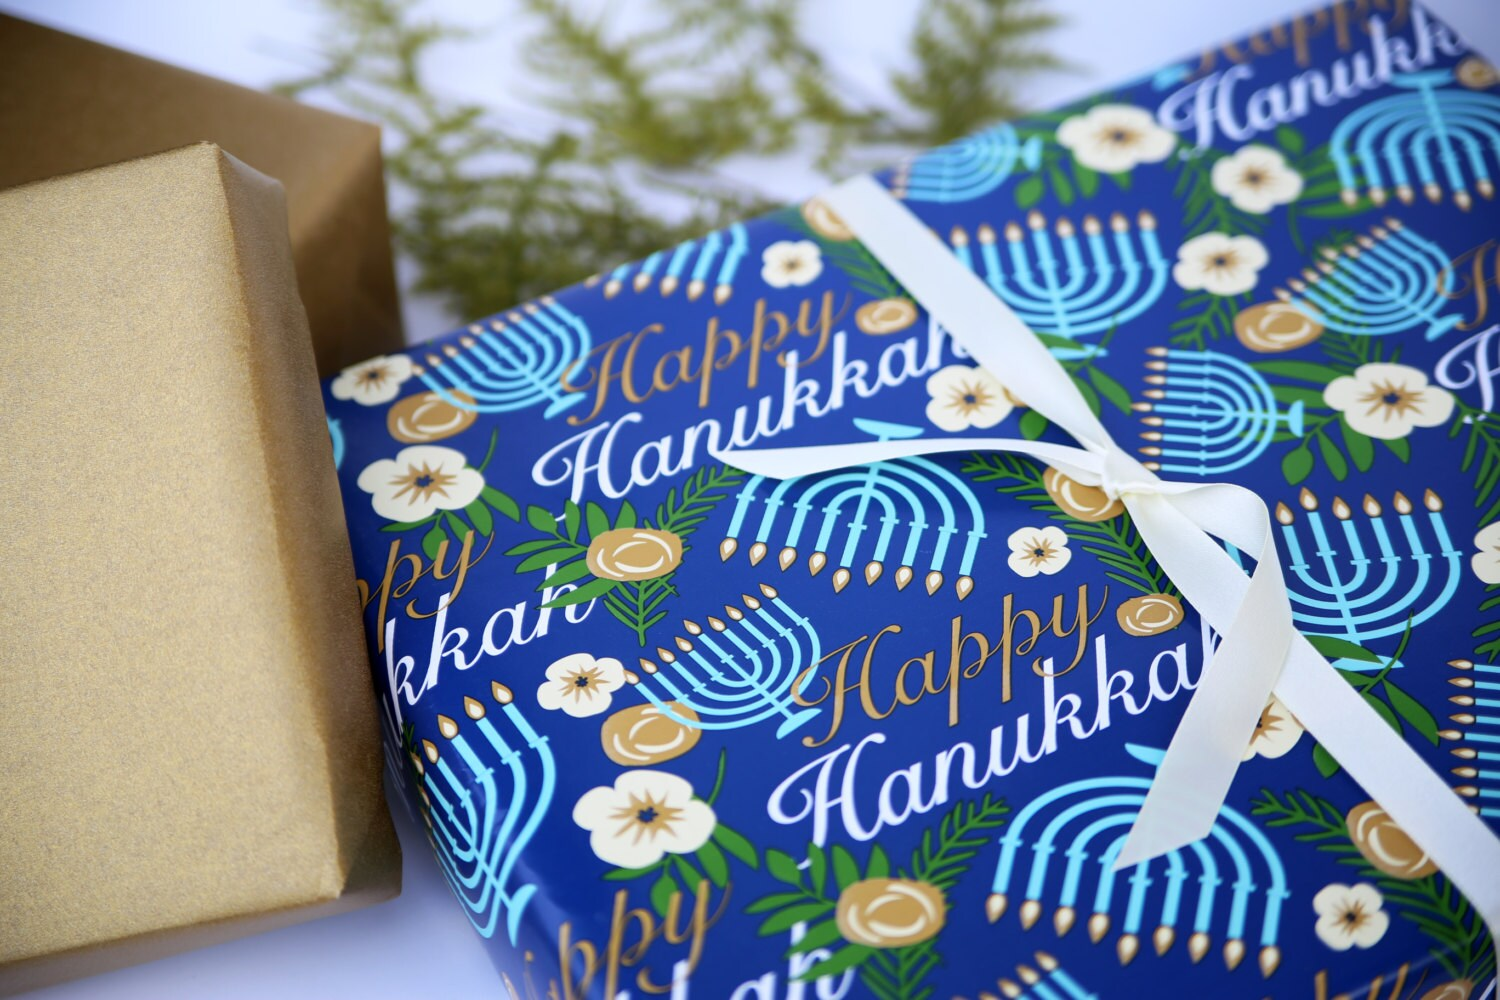 hanukkah wrapping paper Don't search we've got the best prices for premium hanukkah gift wrapping paper kit with bows and tags, menorah toss and other amazing wrapping paper deals.